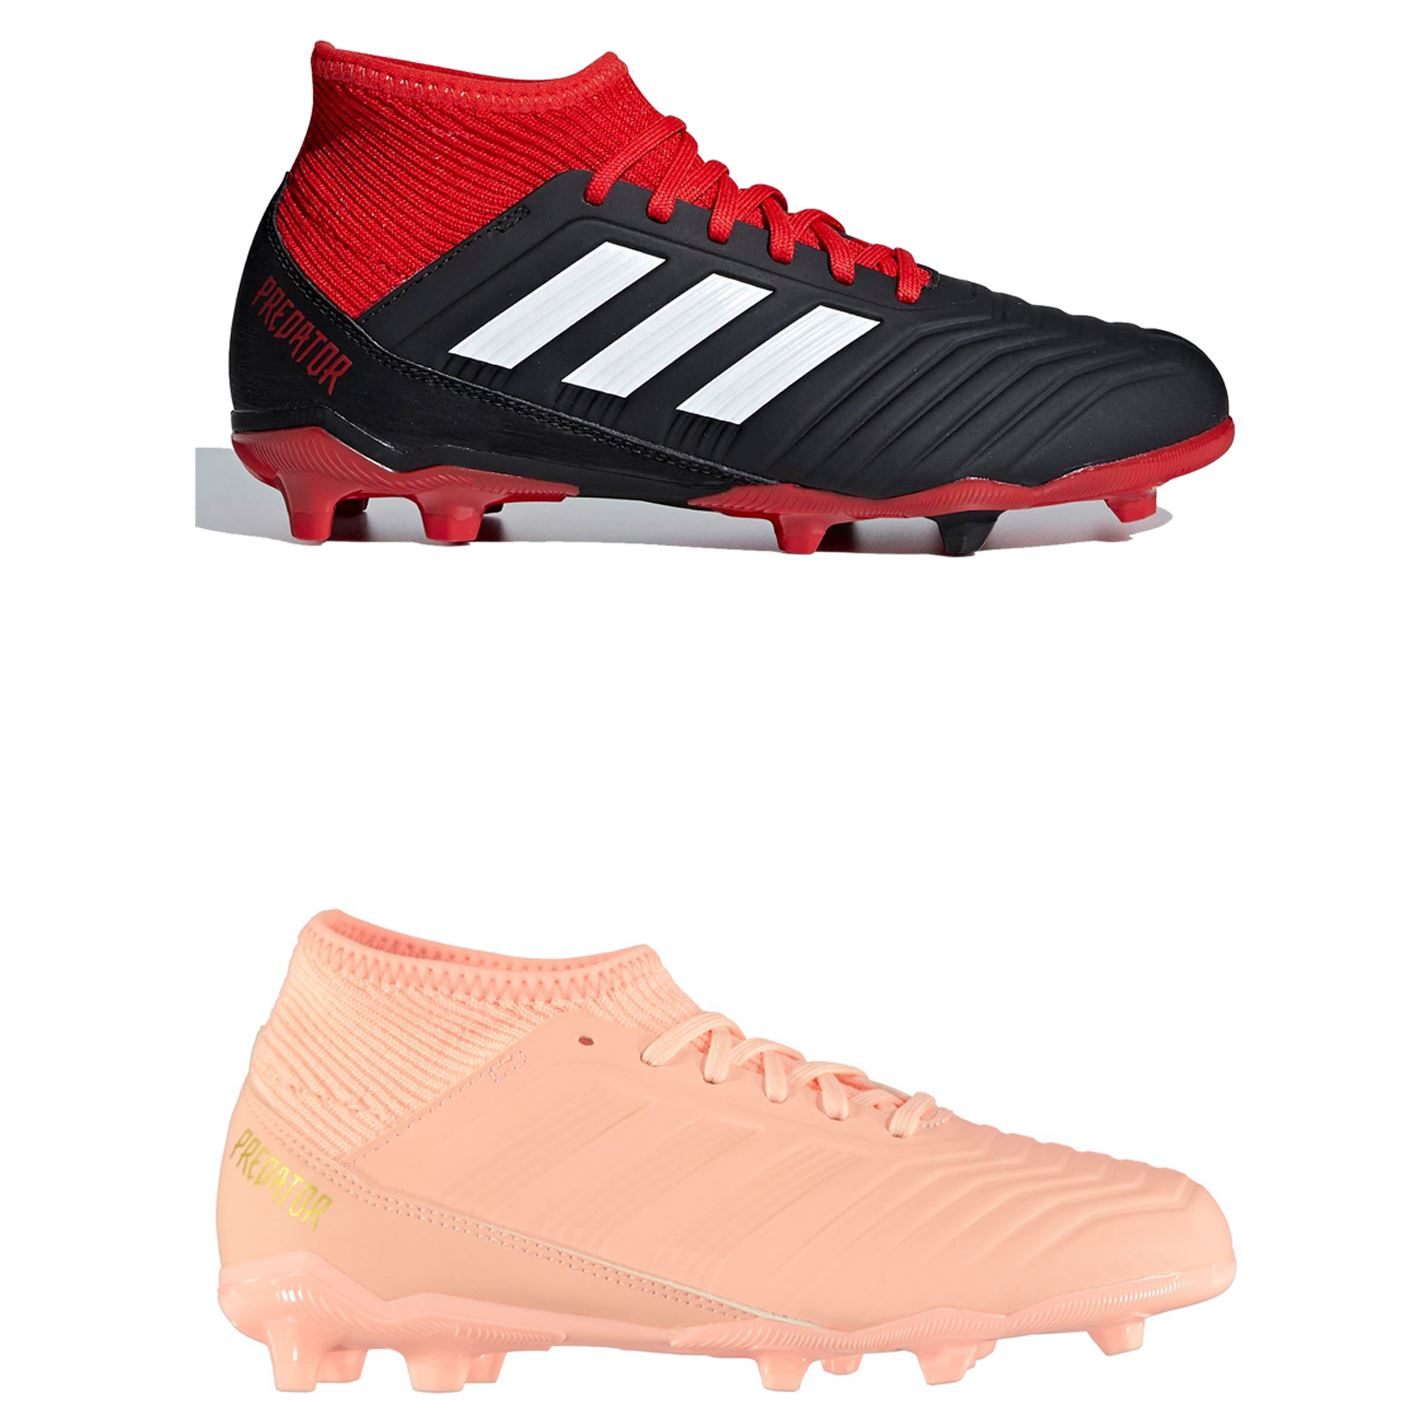 7fb3ed1aa ... adidas Predator 18.3 FG Firm Ground Football Boots Childs Soccer Shoes  Cleats ...